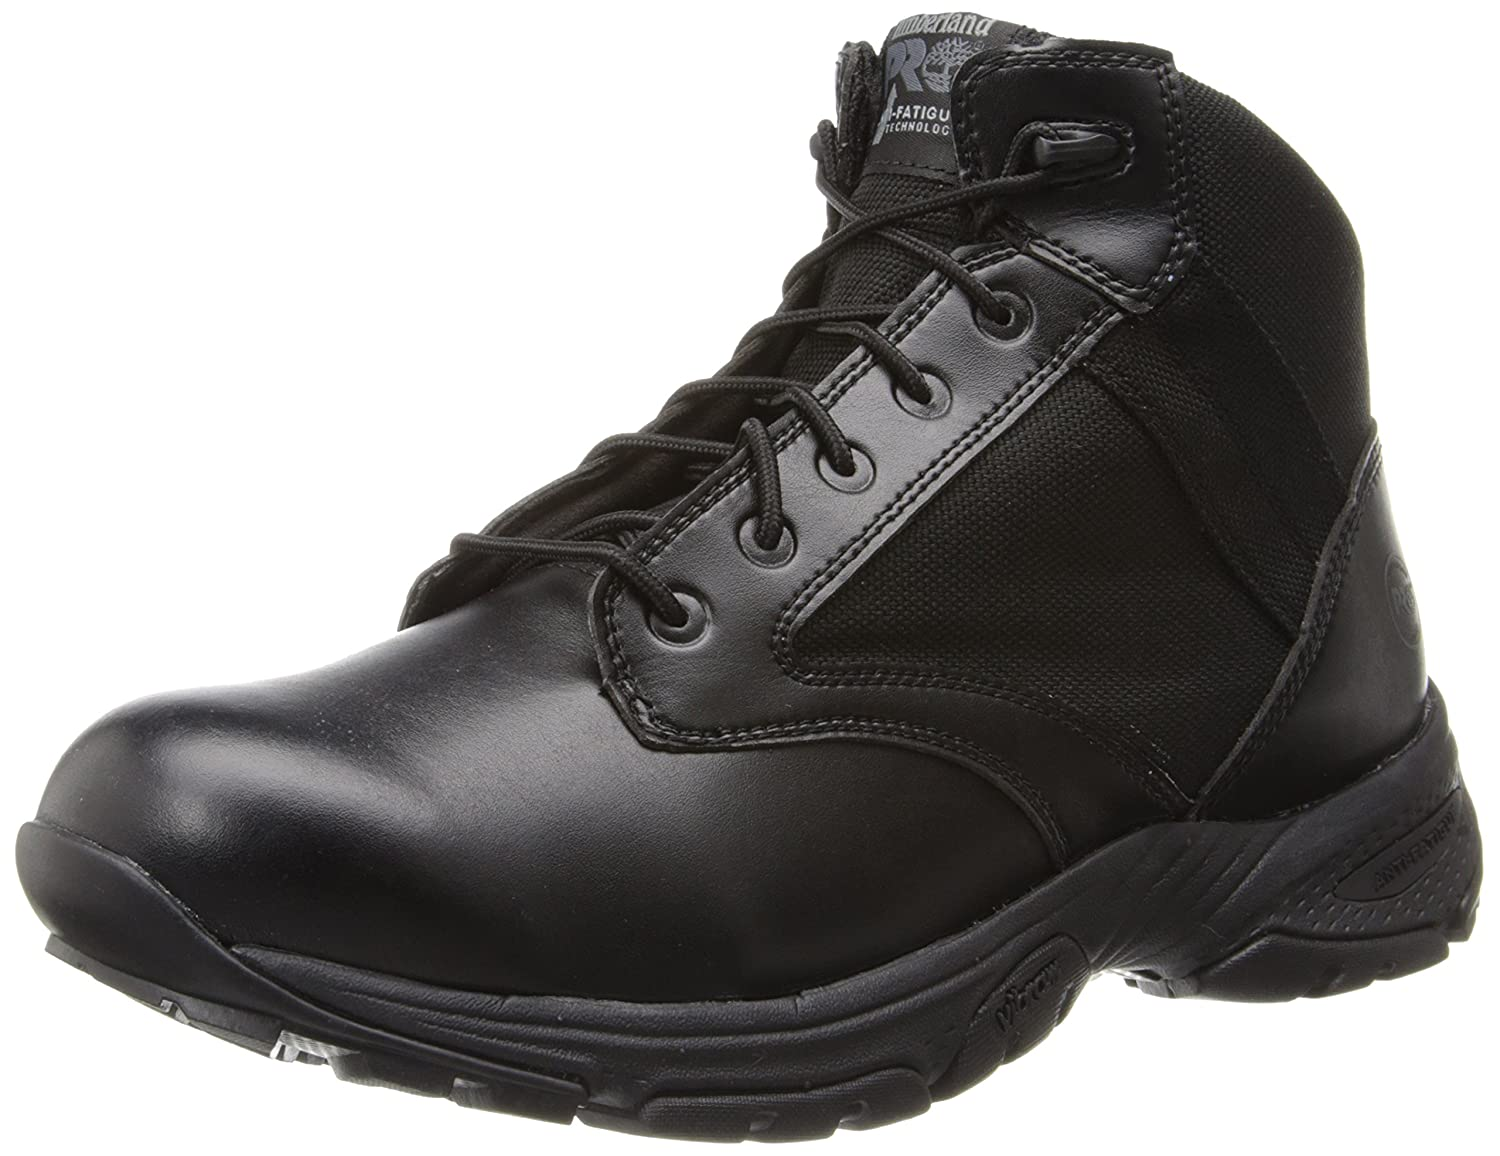 Timberland PRO メンズ B00HMY68K8 13 D(M) US|Black Smooth With Textile Black Smooth With Textile 13 D(M) US